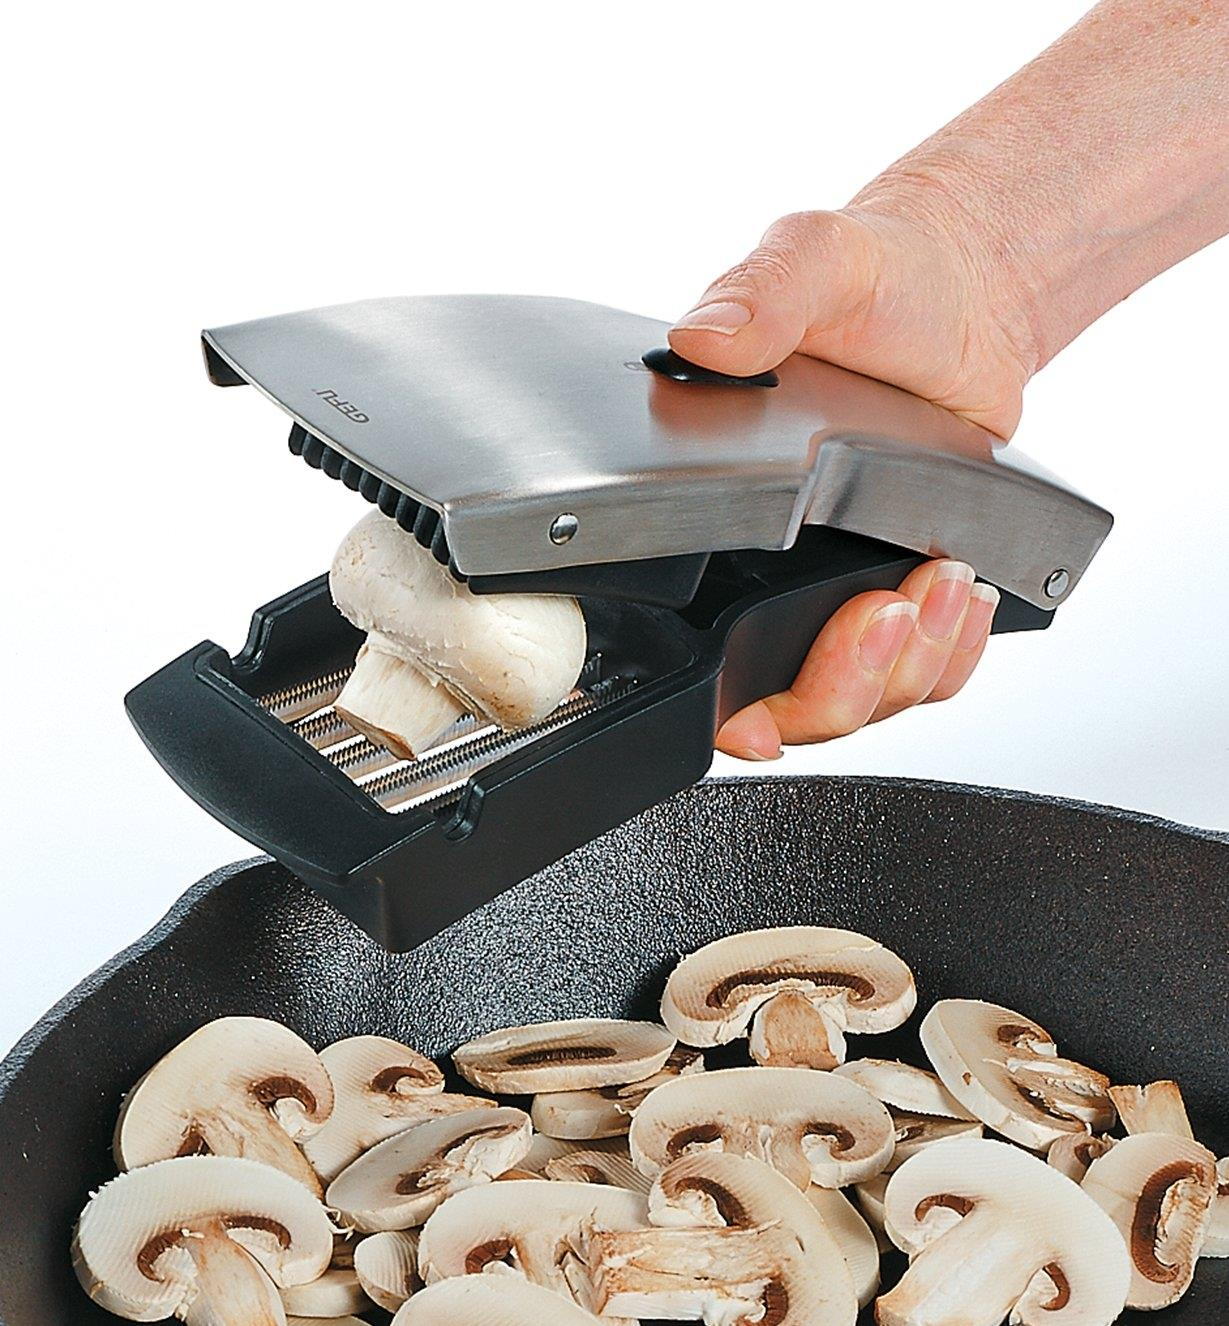 Soft Food Slicer slicing mushrooms into a frying pan